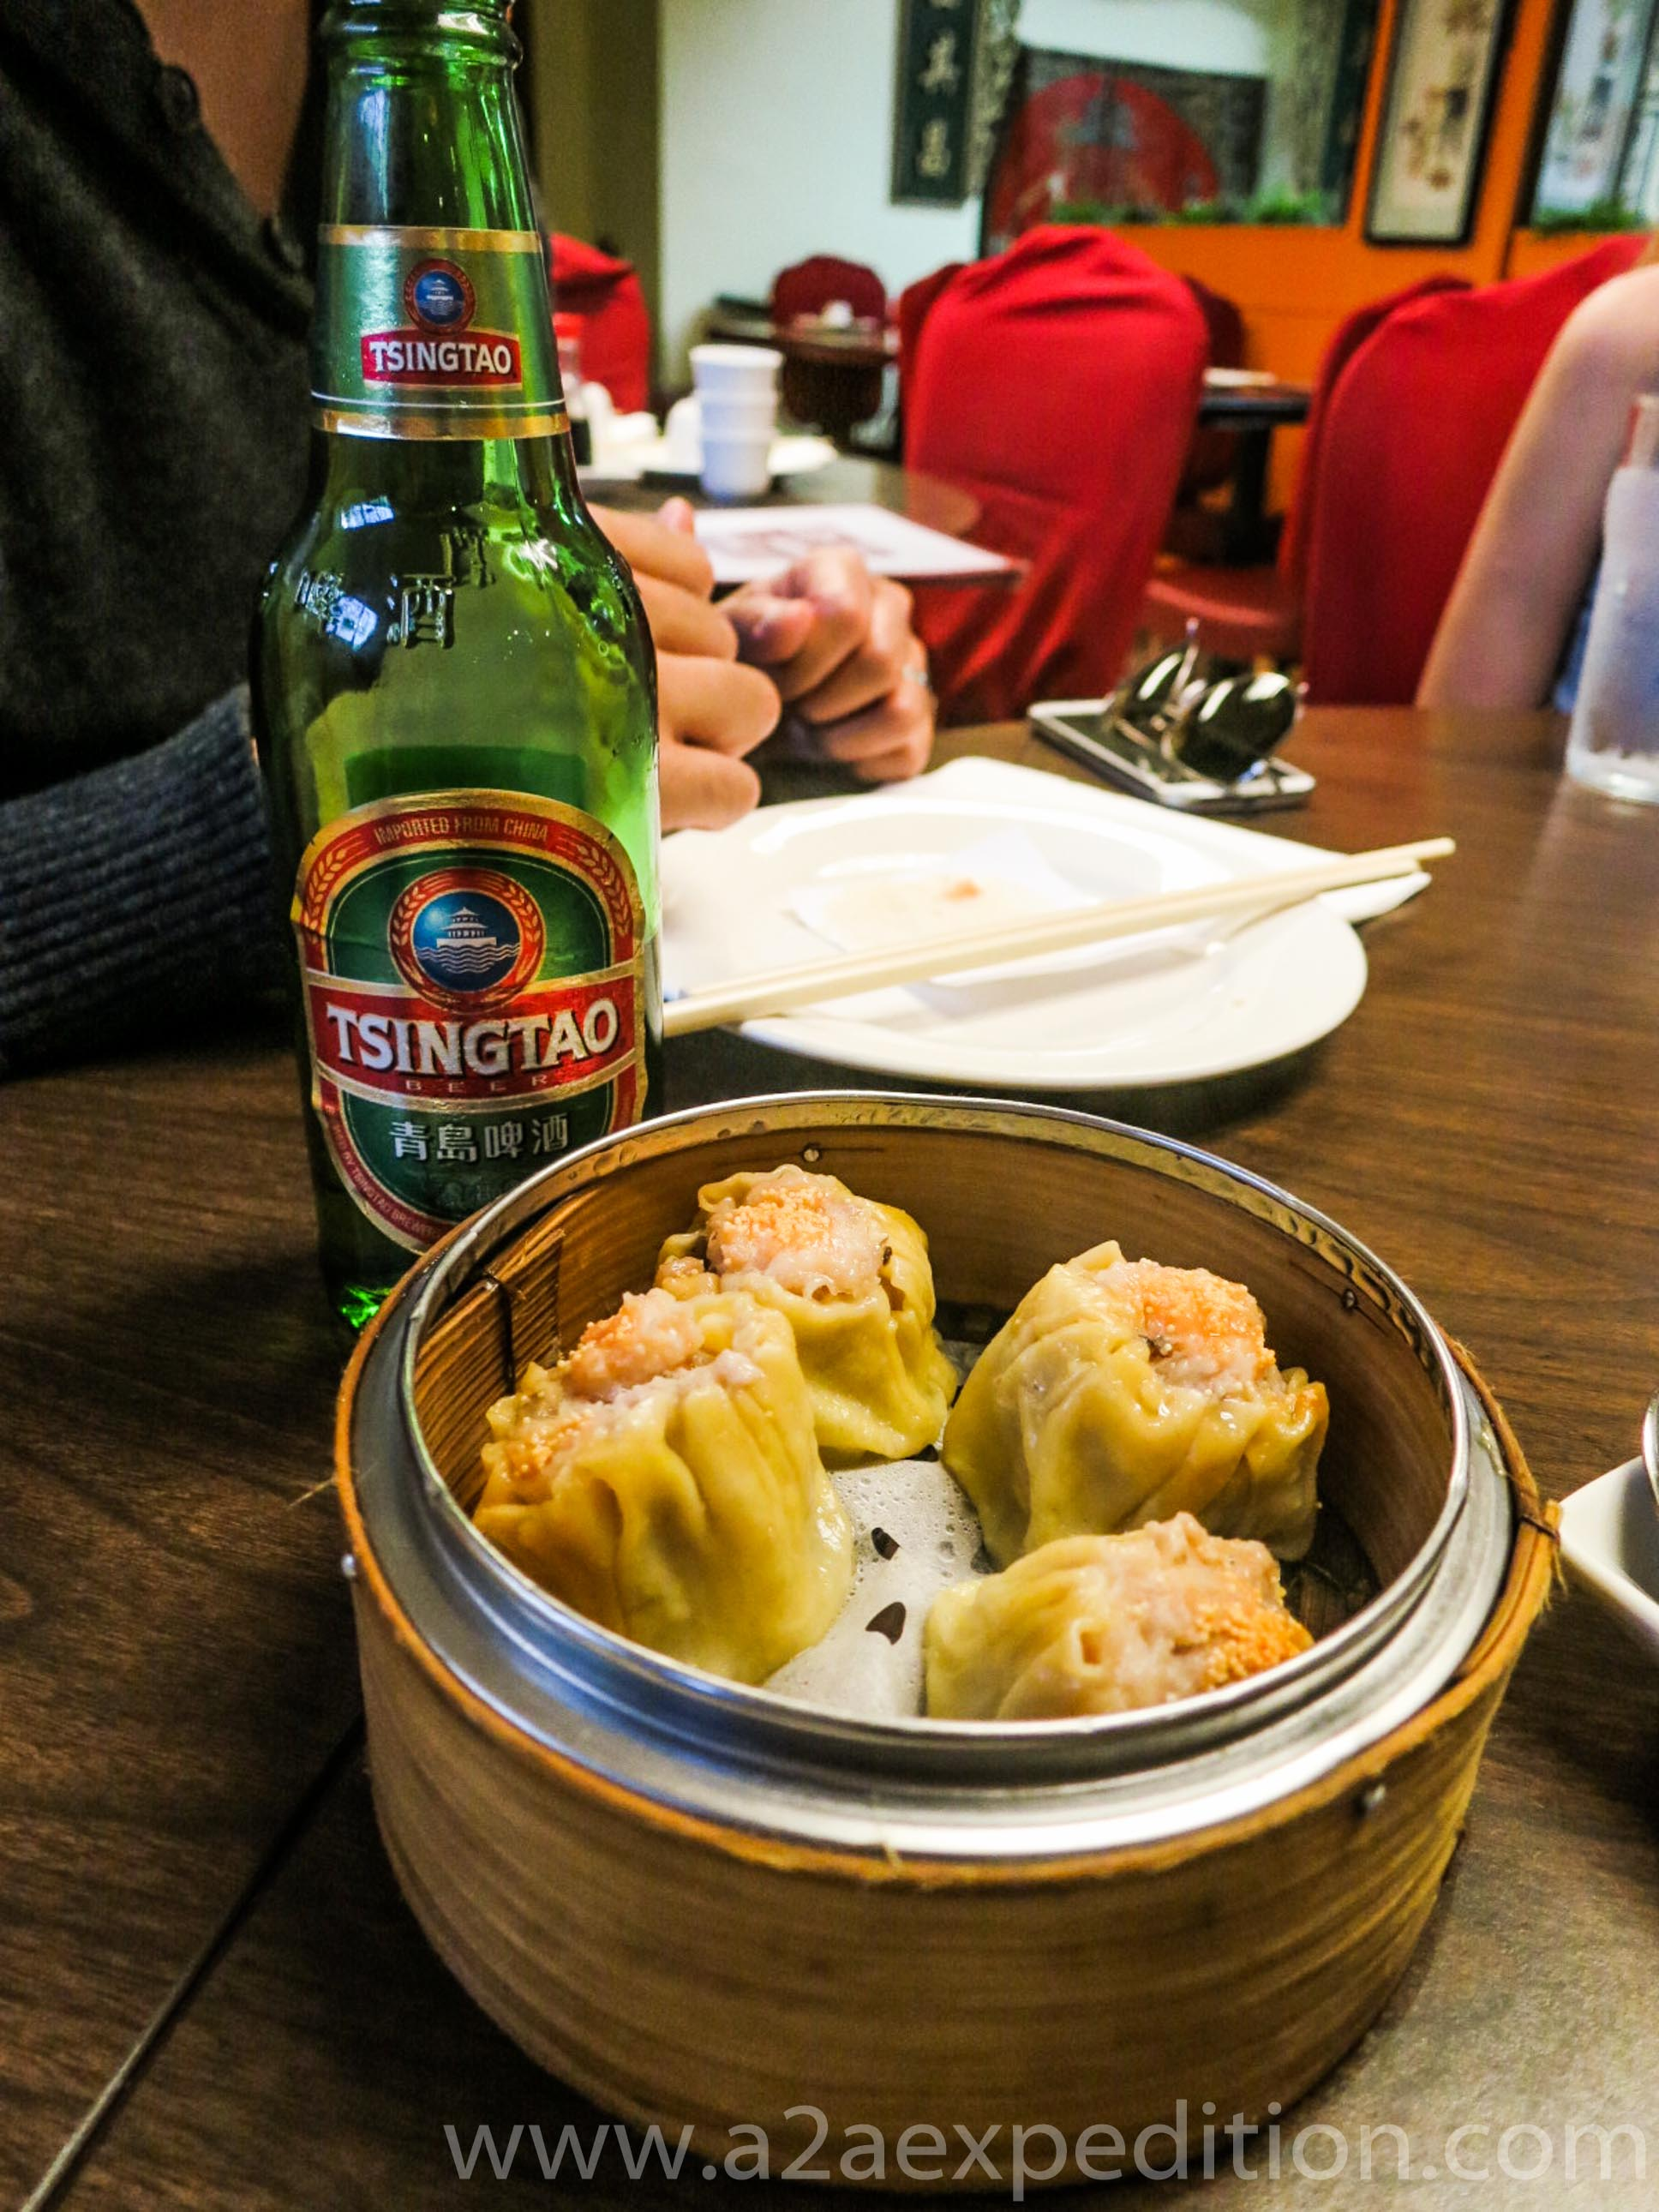 Some Dim Sum, A2A Expedition